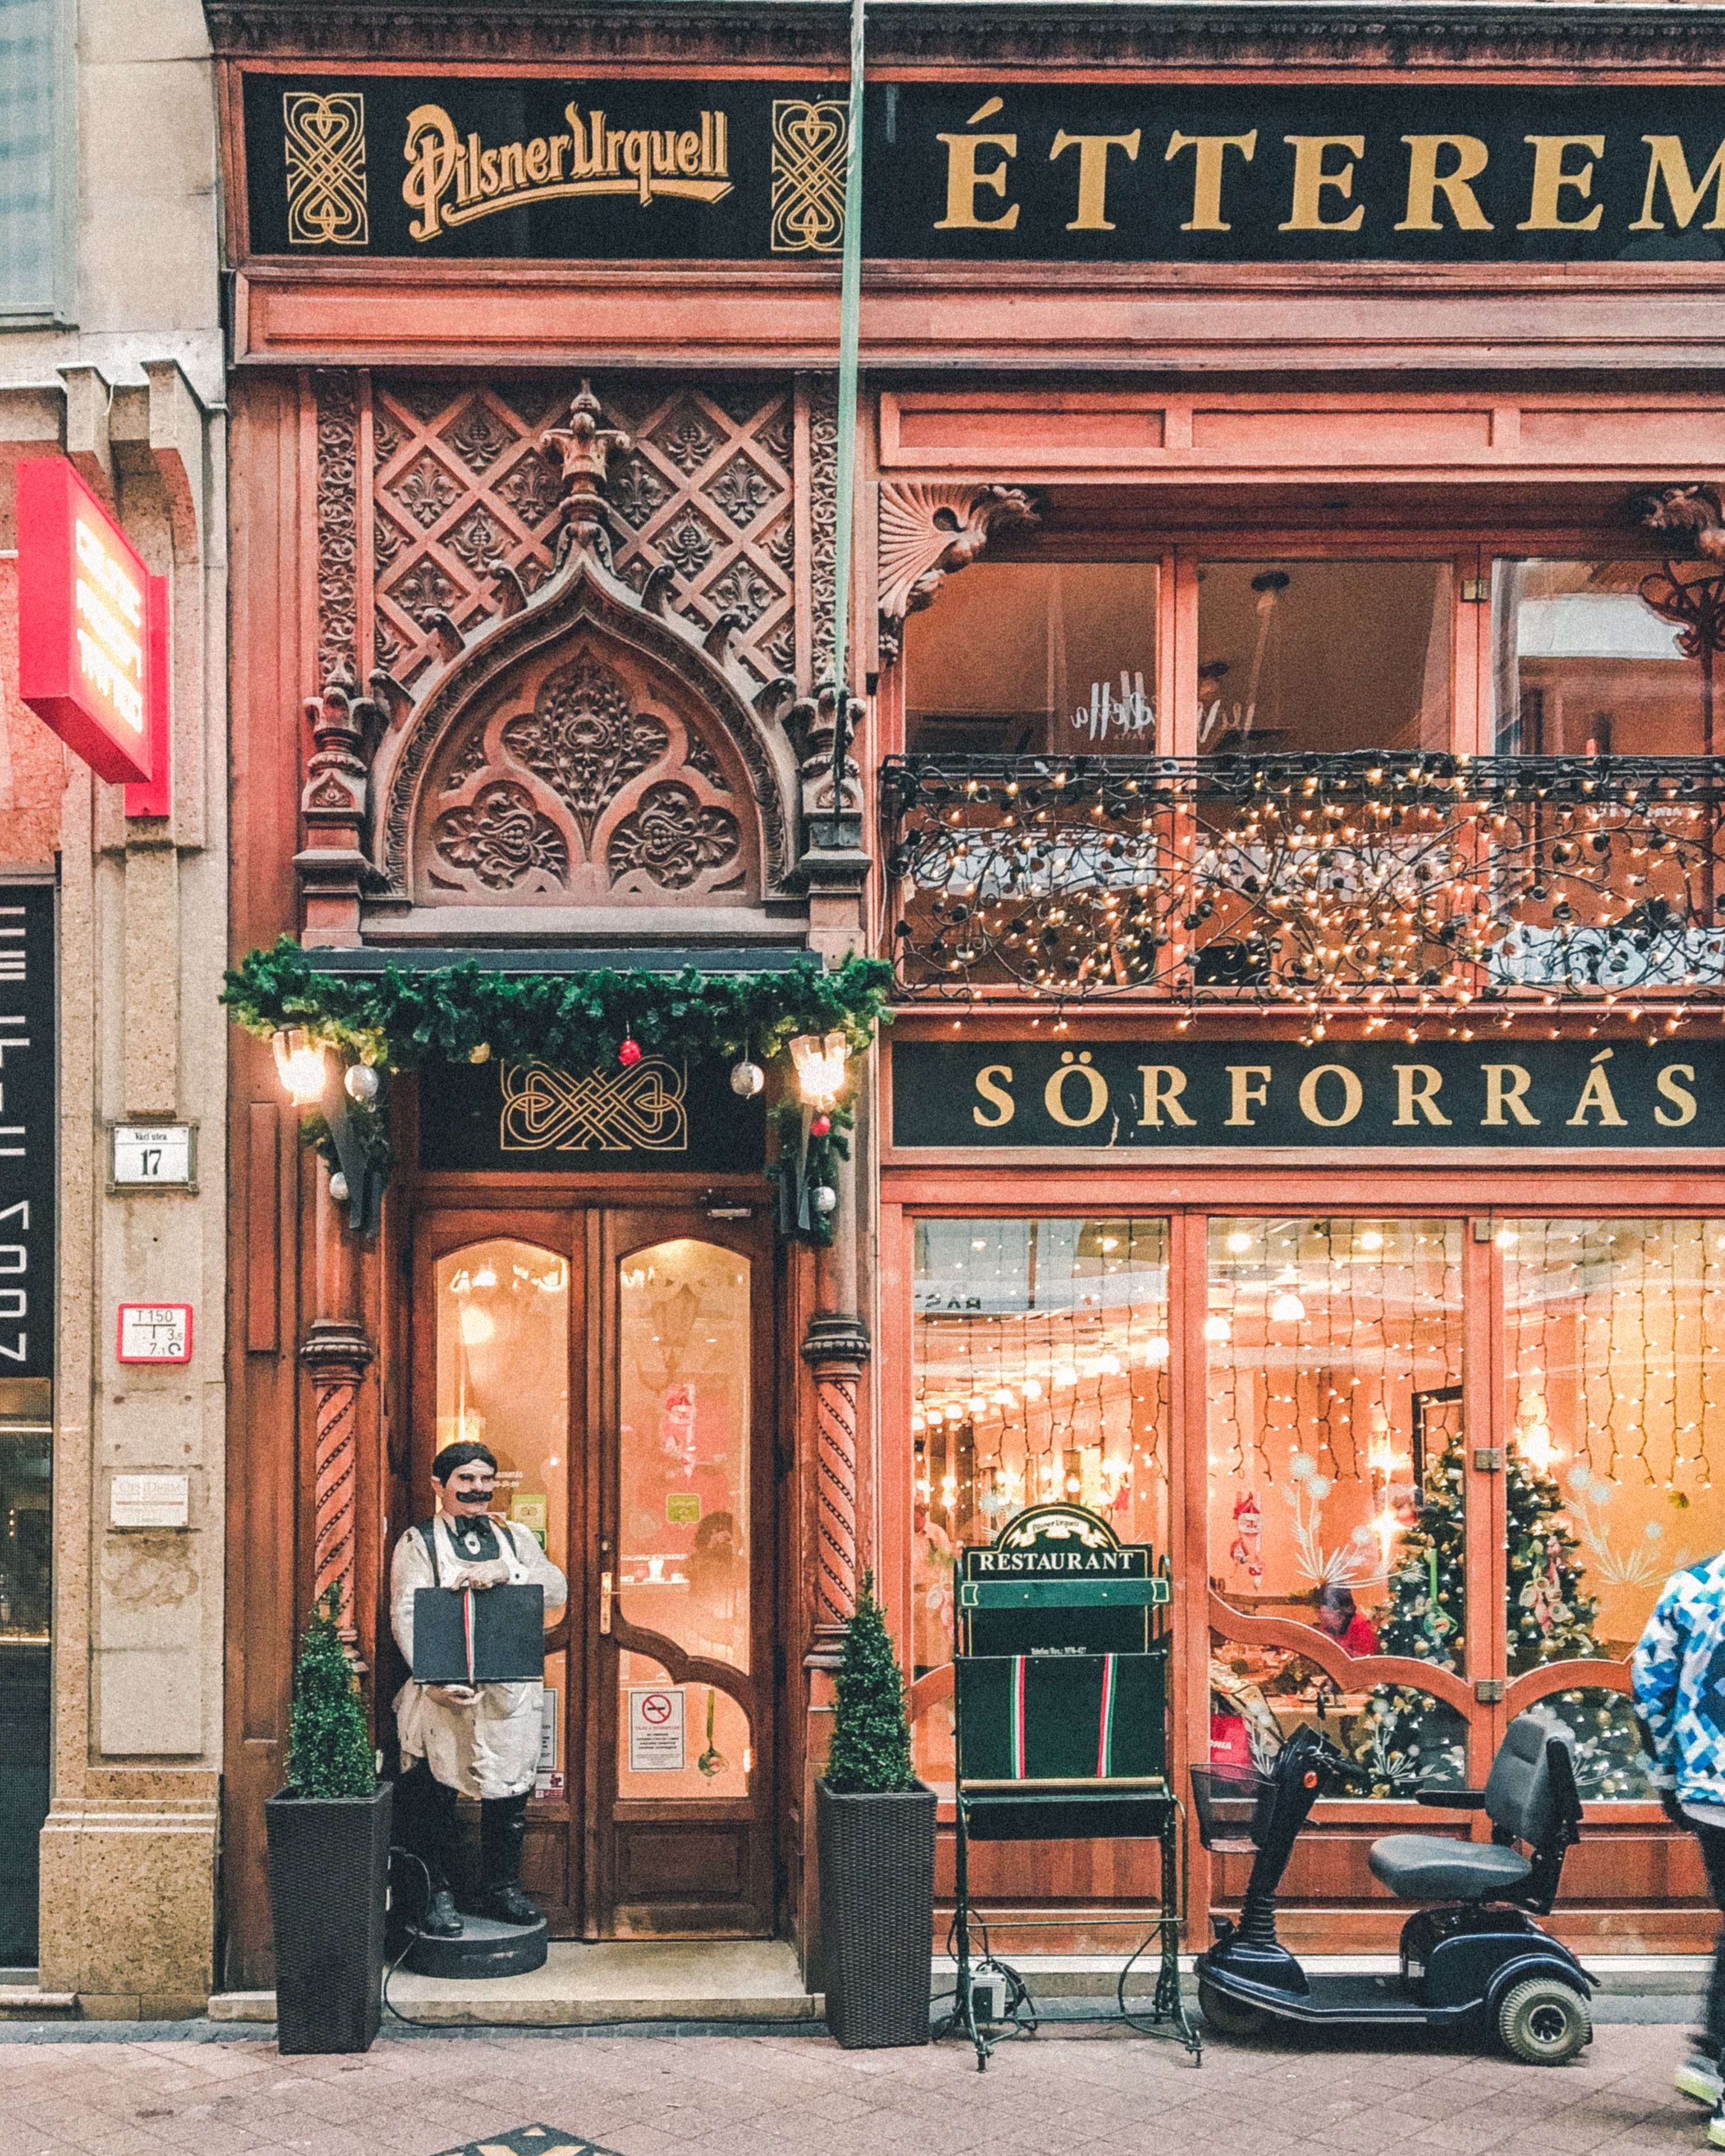 Sorforras Store Signboard